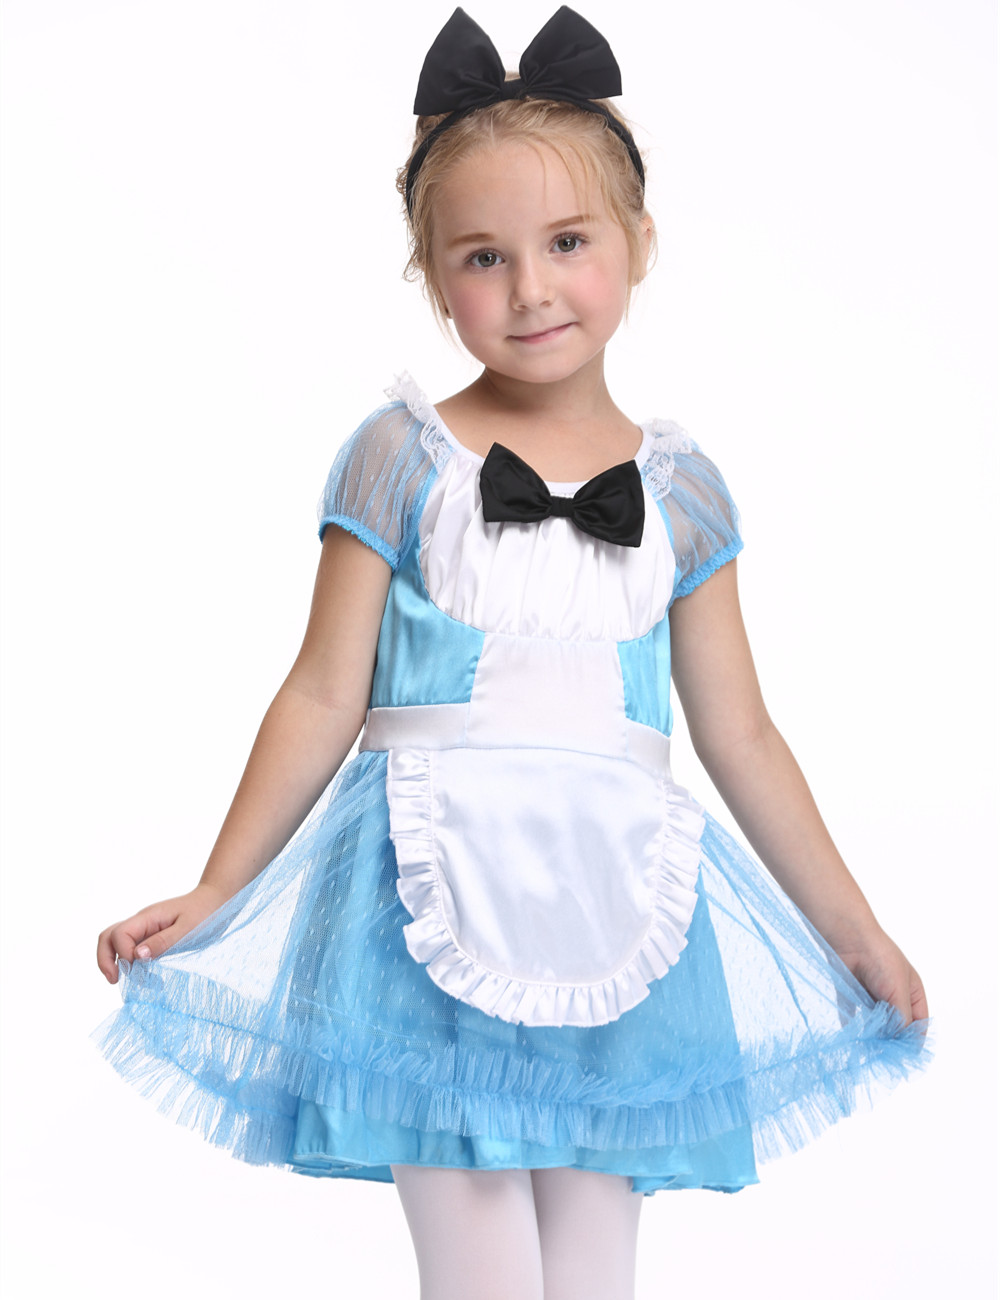 Girls Maid Costume Halloween Costume For Kids Stage & Dance Wear Children Short Sleeve Party Cosplay Skirt